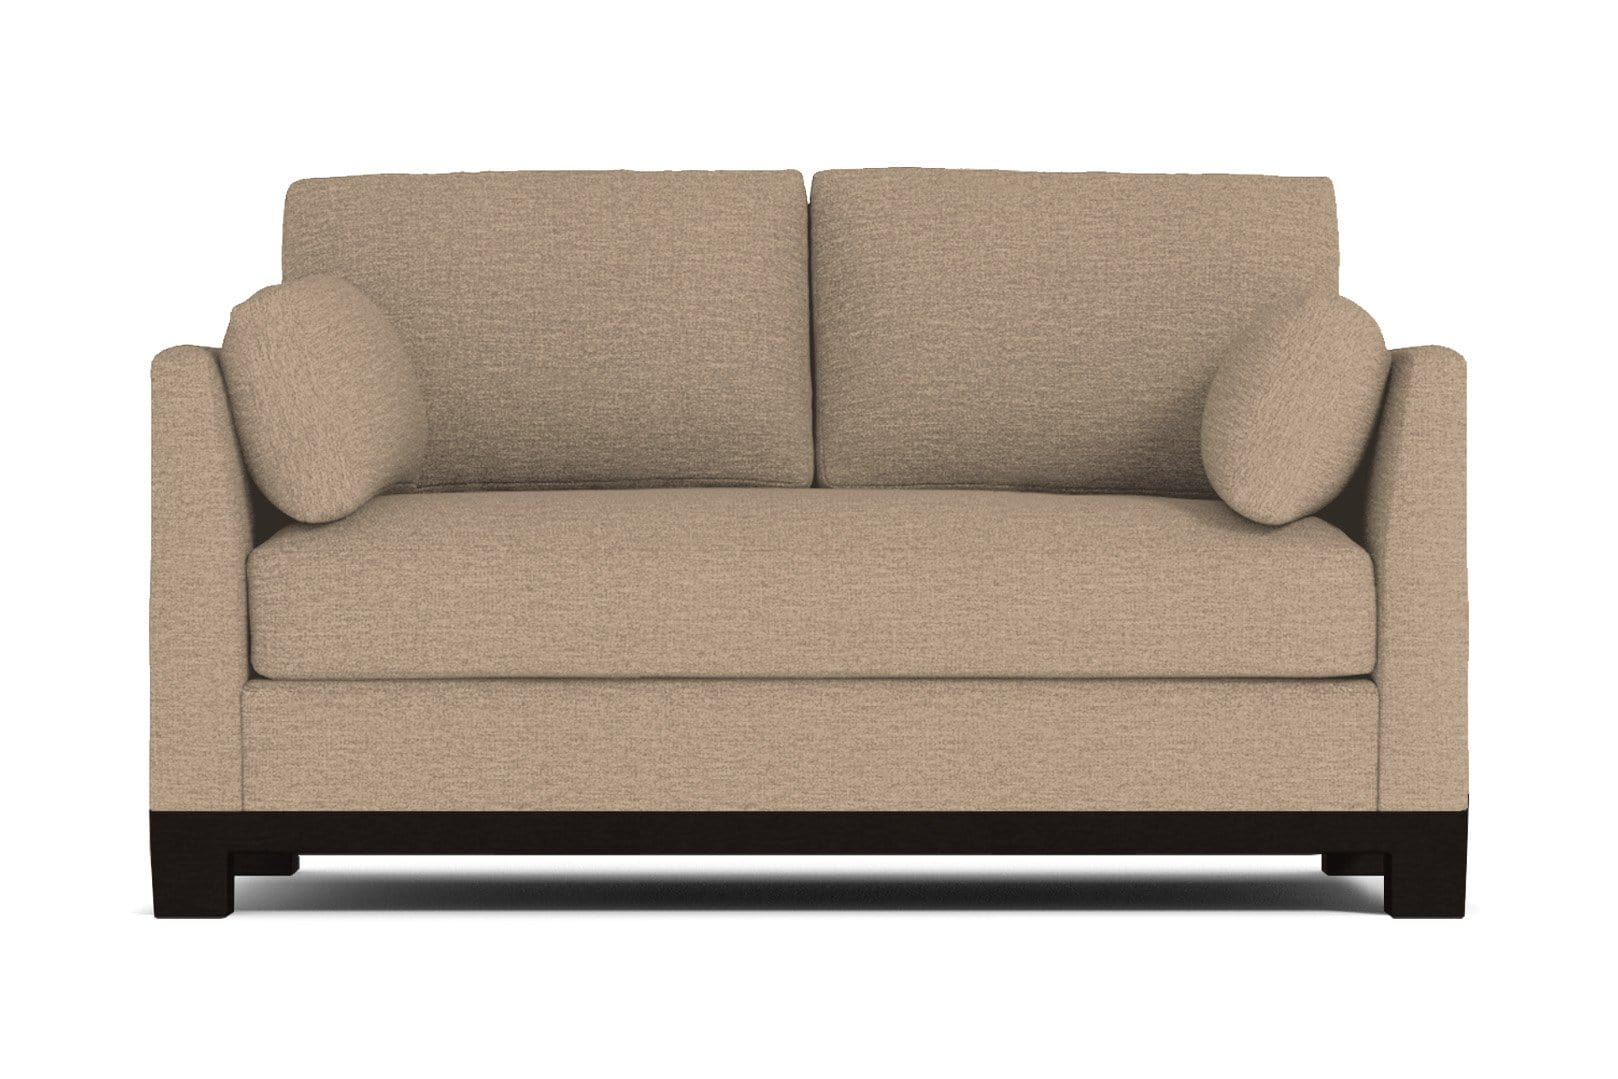 Avalon Apartment Size Sleeper Sofa - Beige QUICK SHIP - Pull Out Couch Bed Made in the USA - Sold by Apt2B